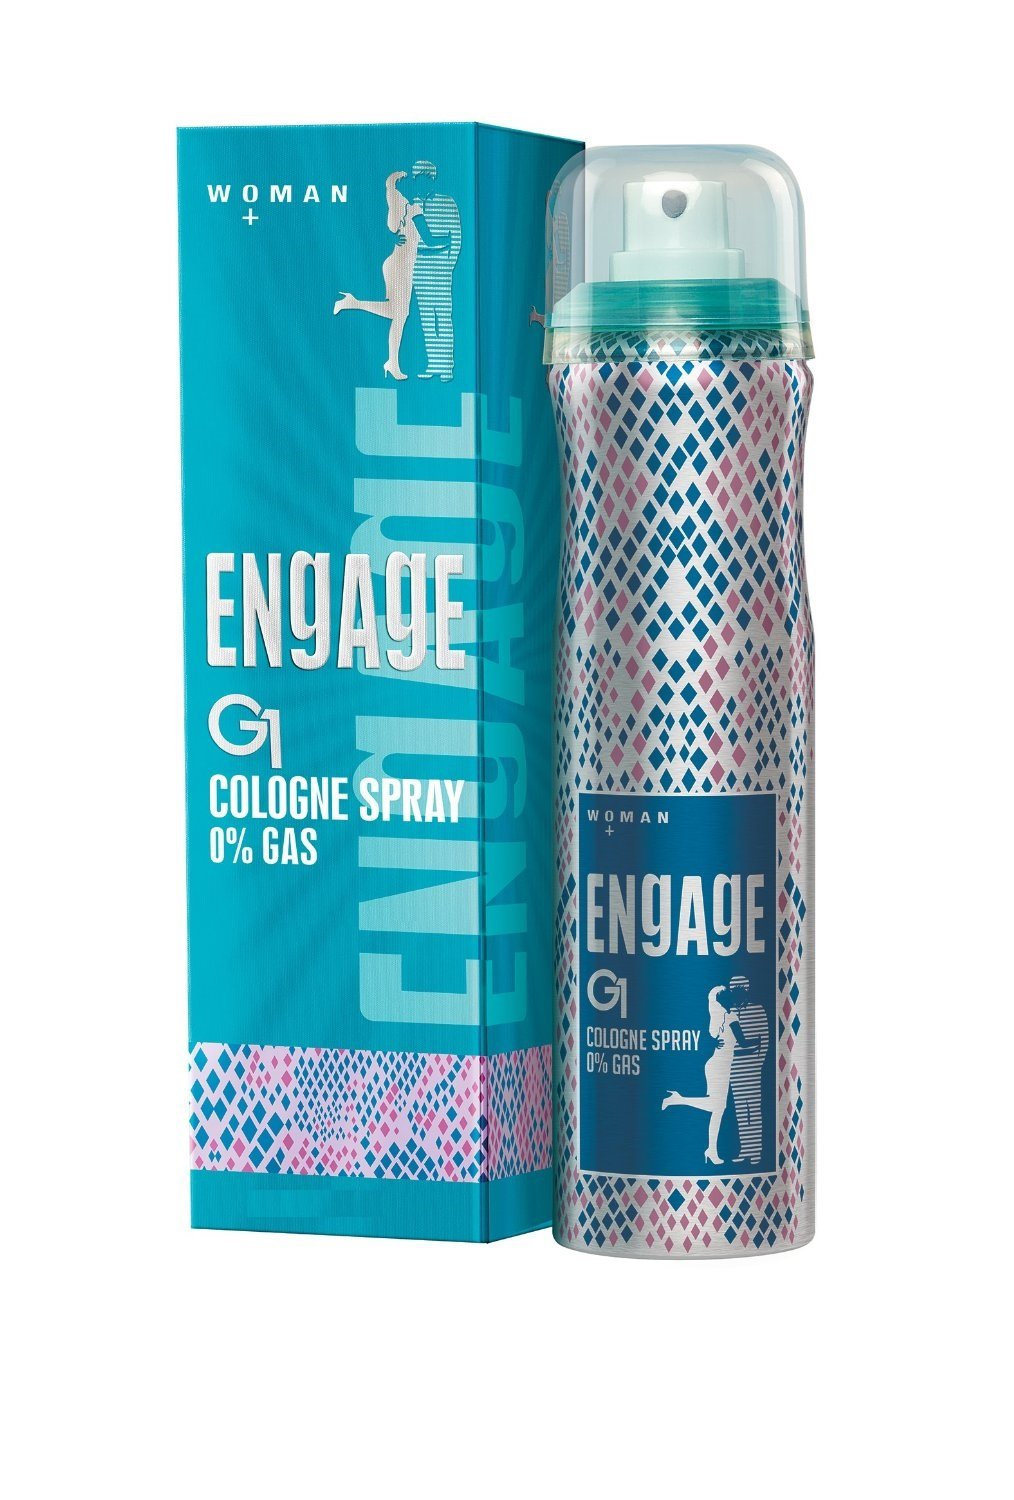 Engage G1 Cologne Spray For Women, 135ml product image